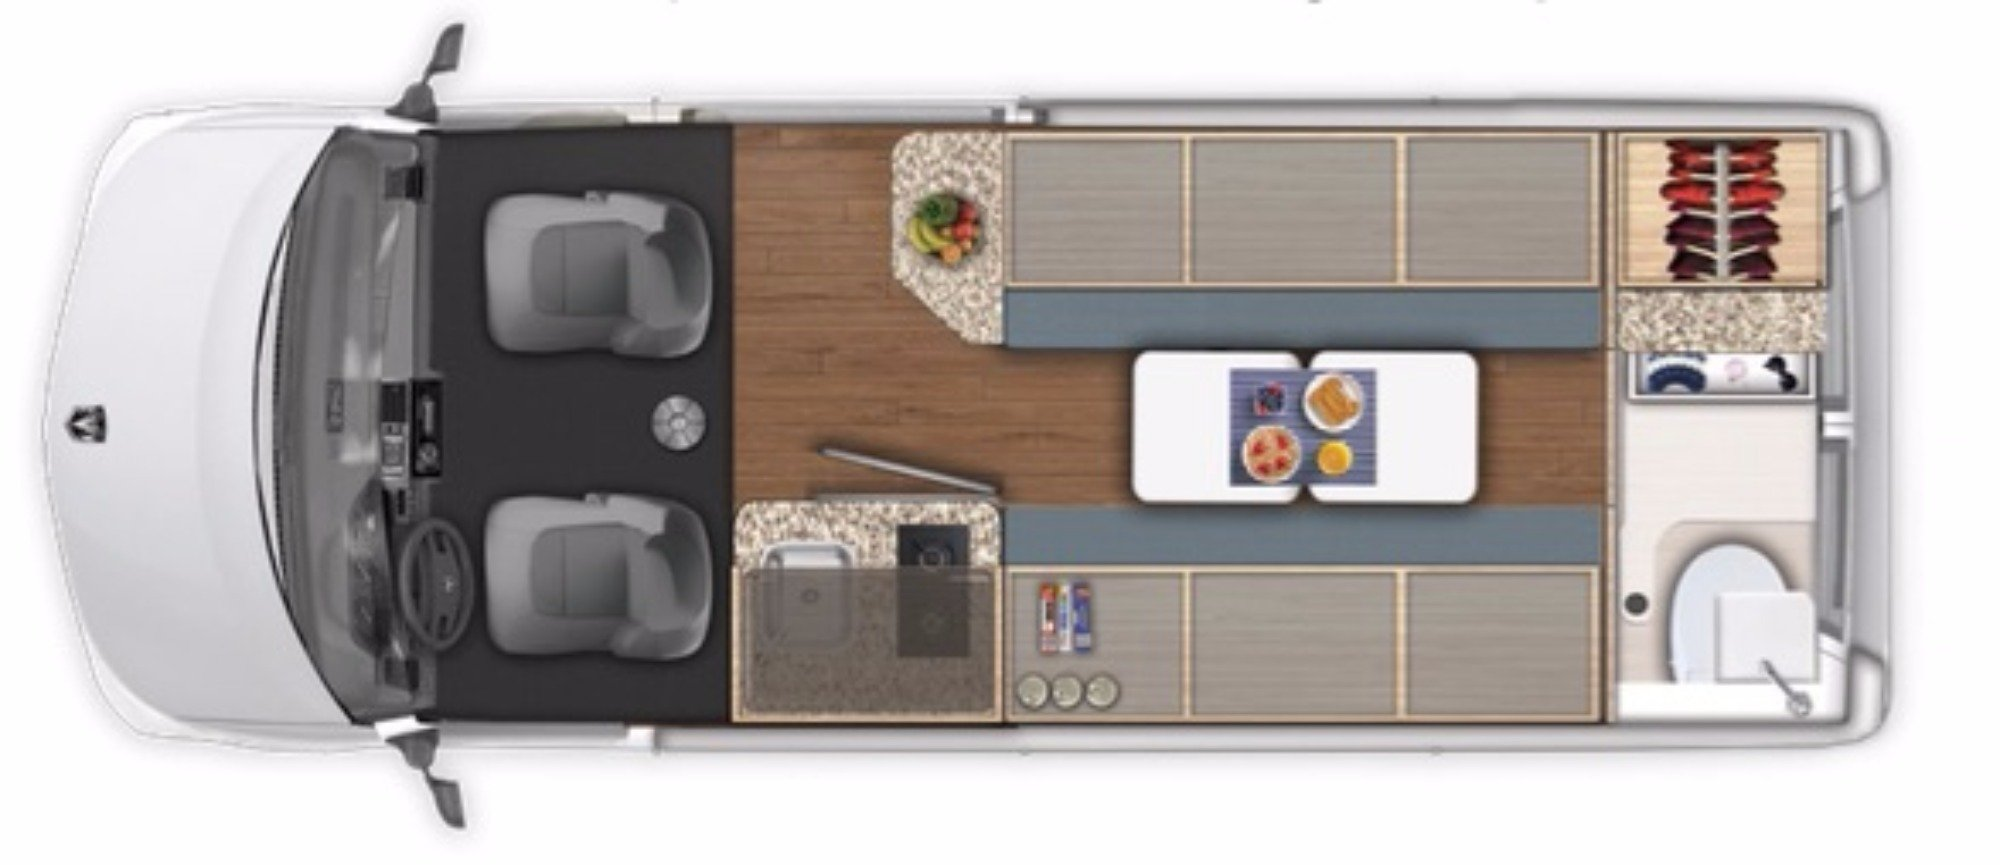 Mercedes Sprinter Motorhome Floor Plan Carpet Vidalondon